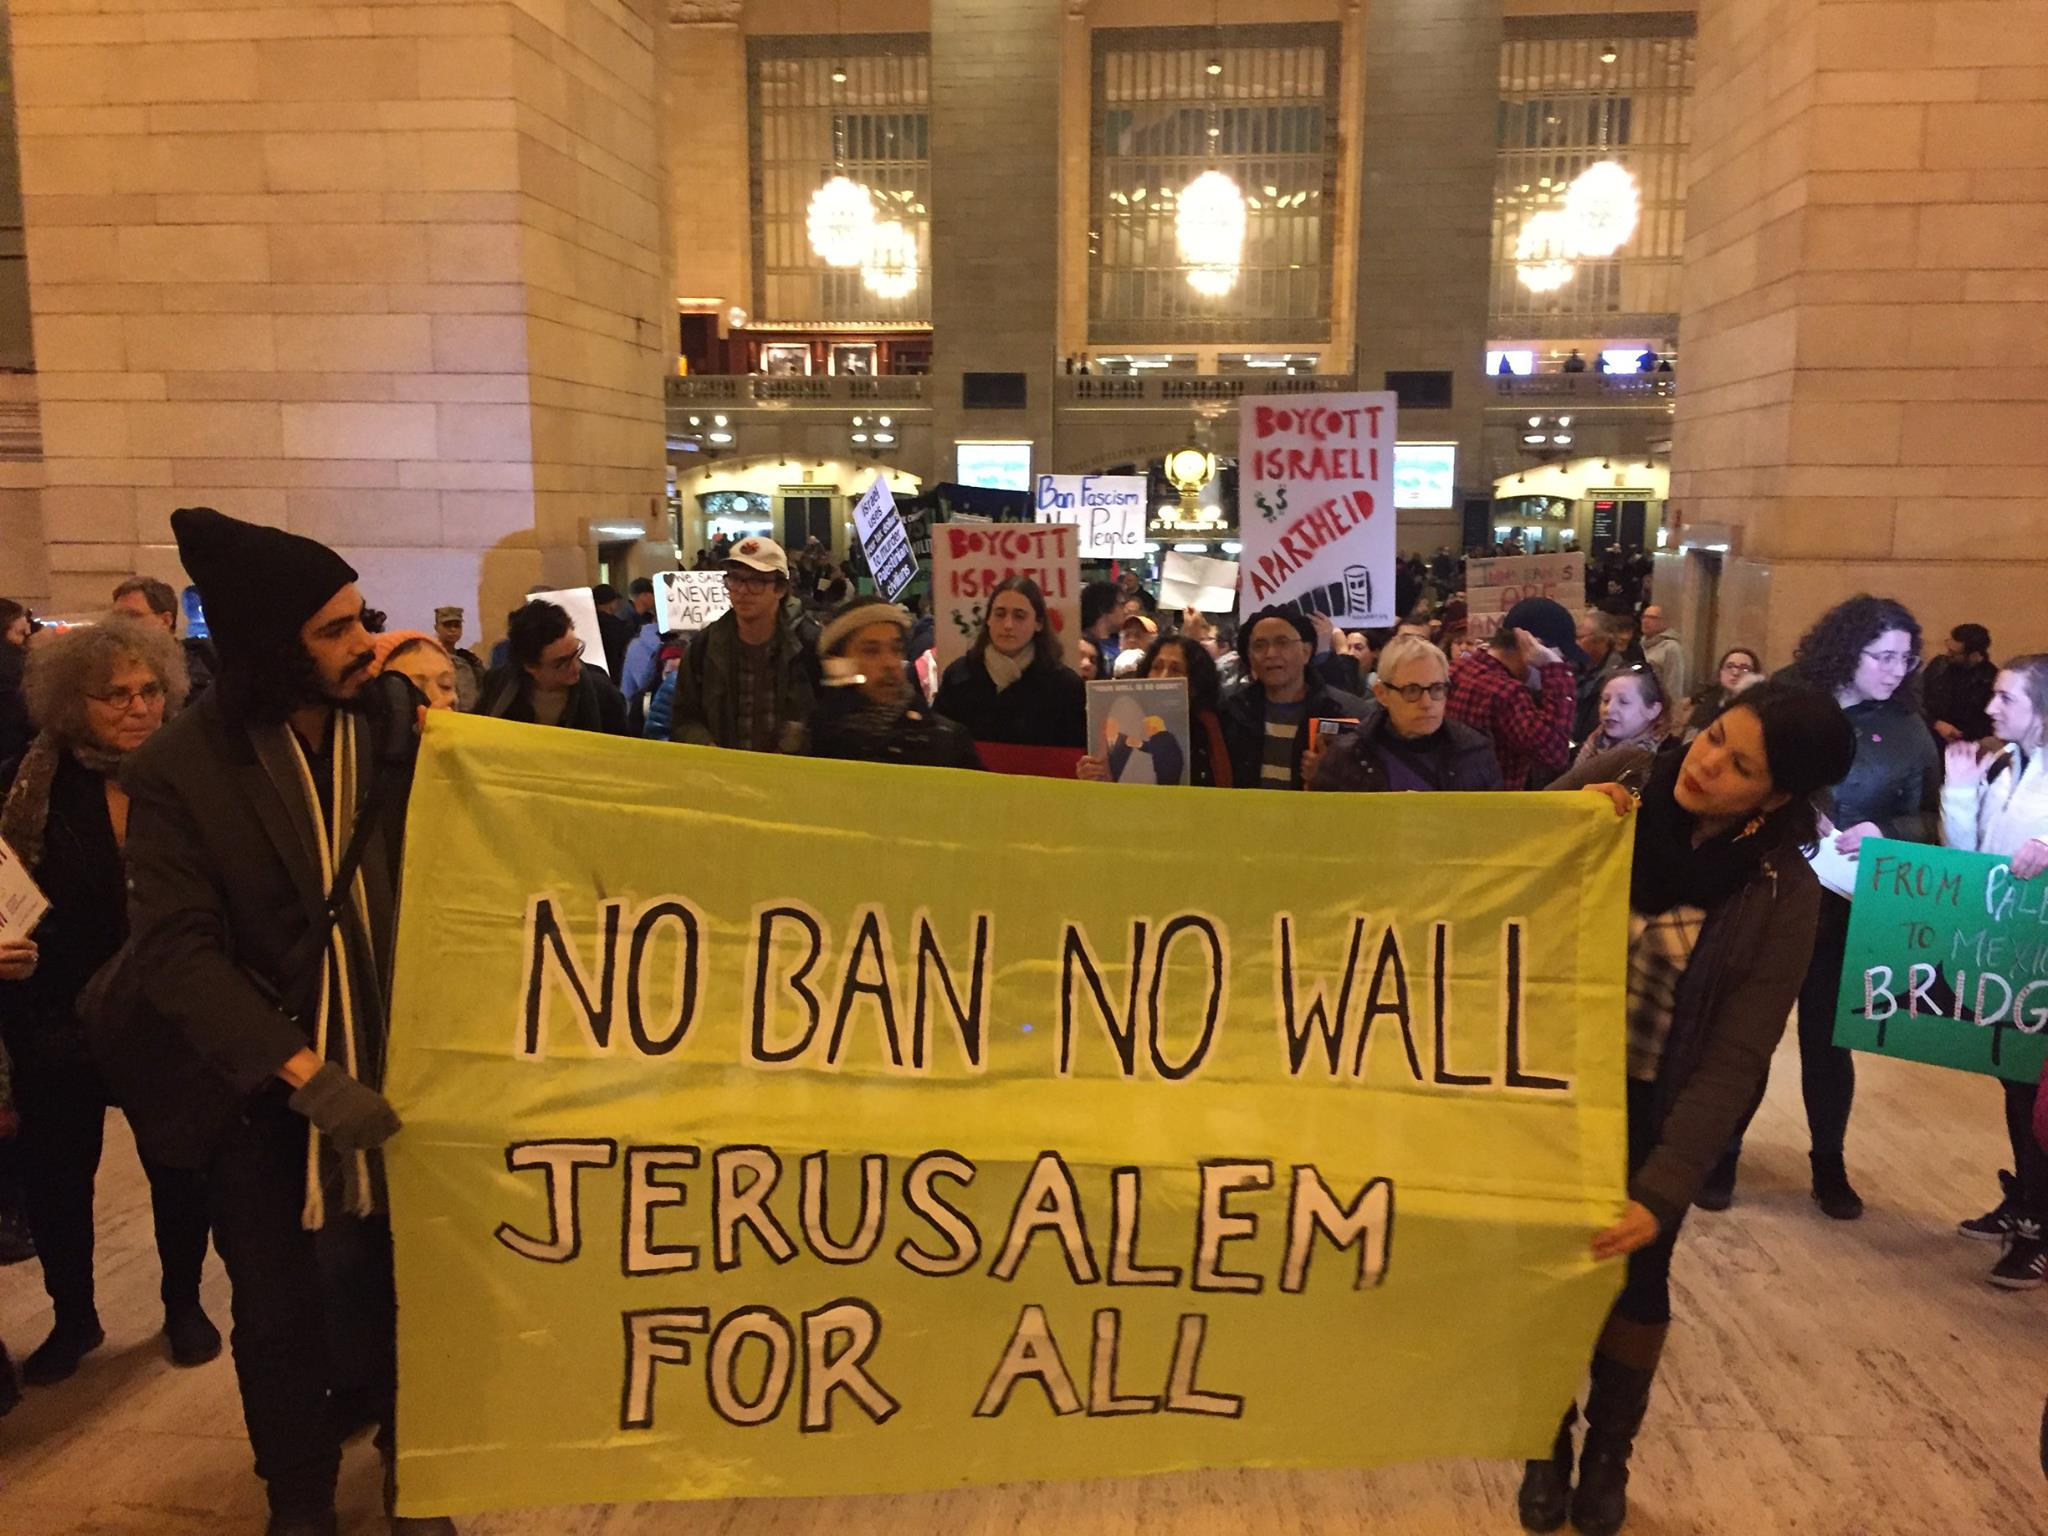 no ban no wall jerusalem for all.jpg